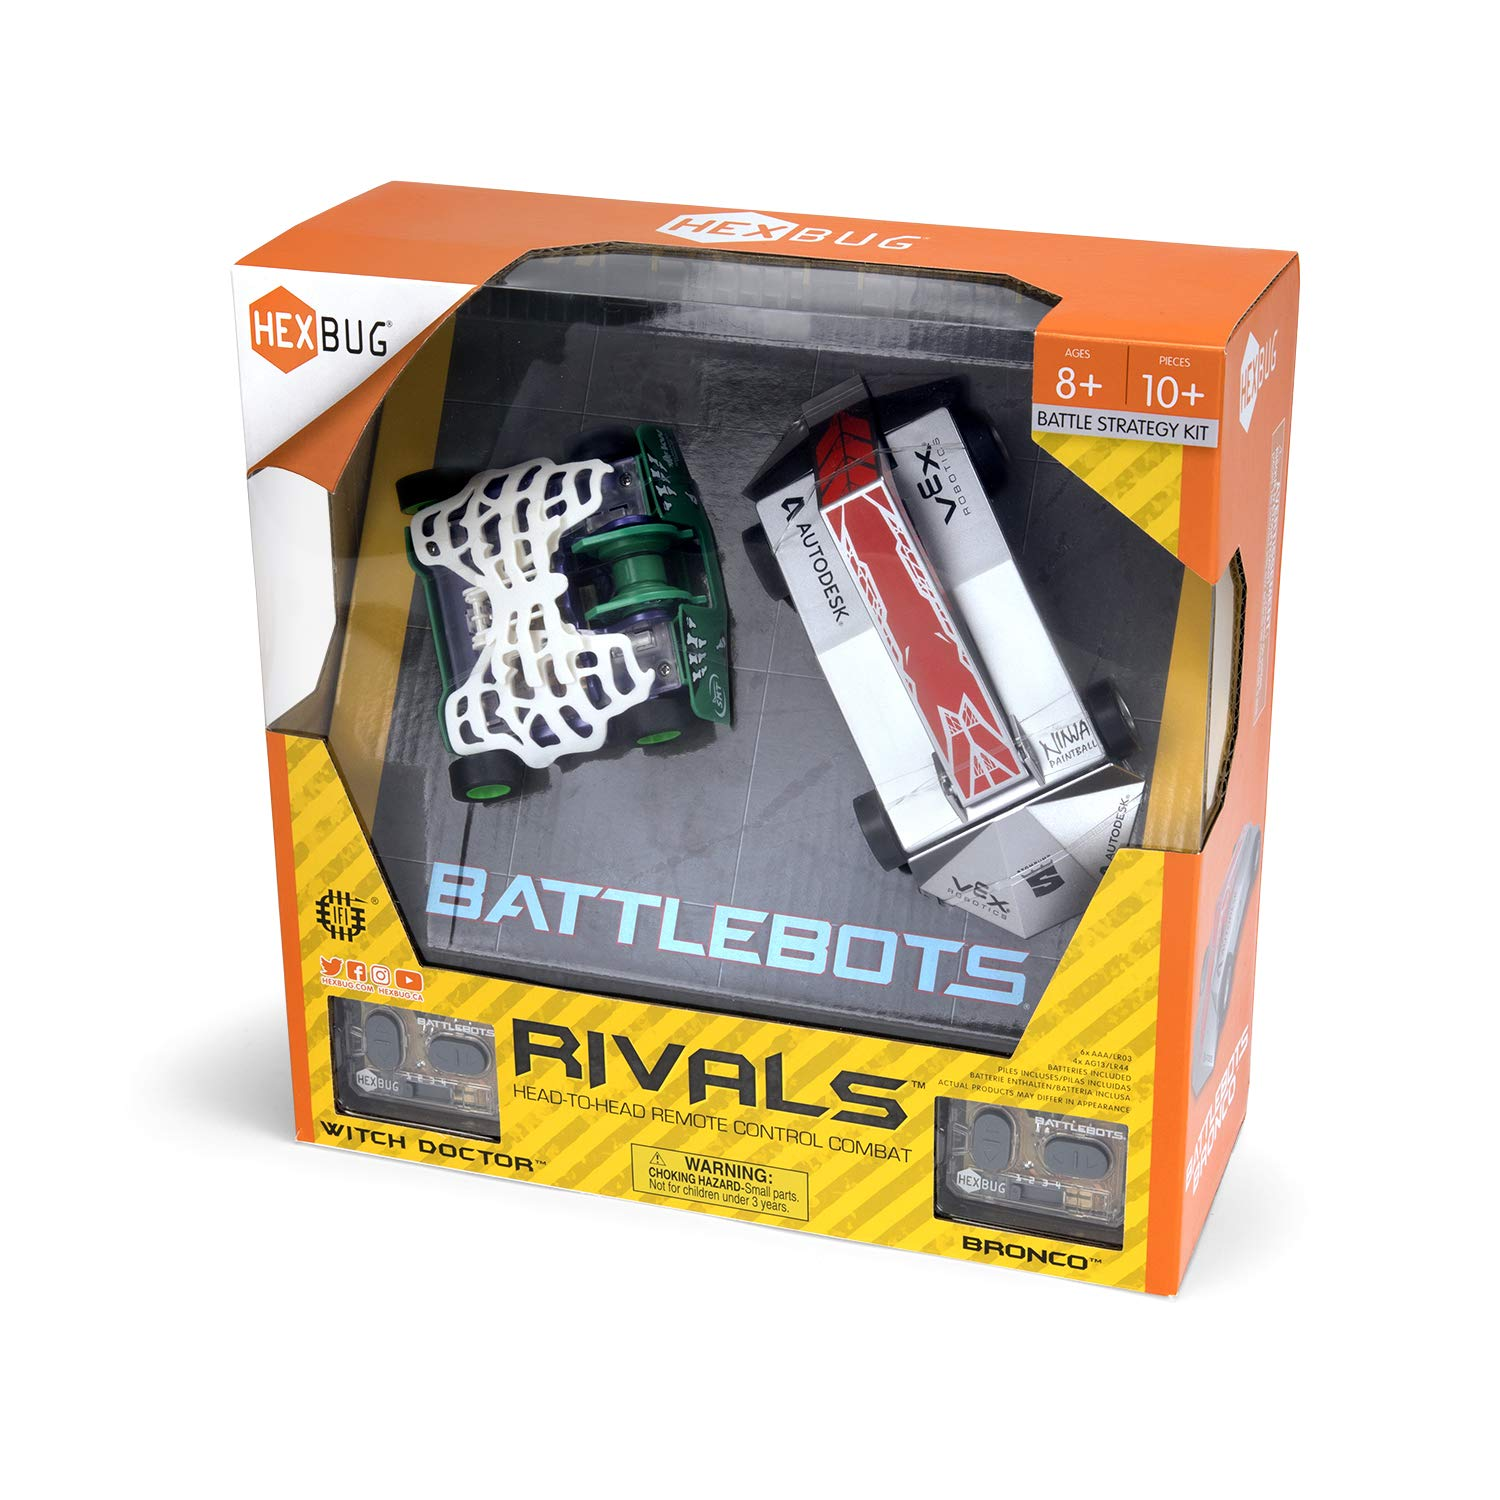 HEXBUG BattleBots Rivals (Bronco and Witch Doctor) by HEXBUG (Image #4)